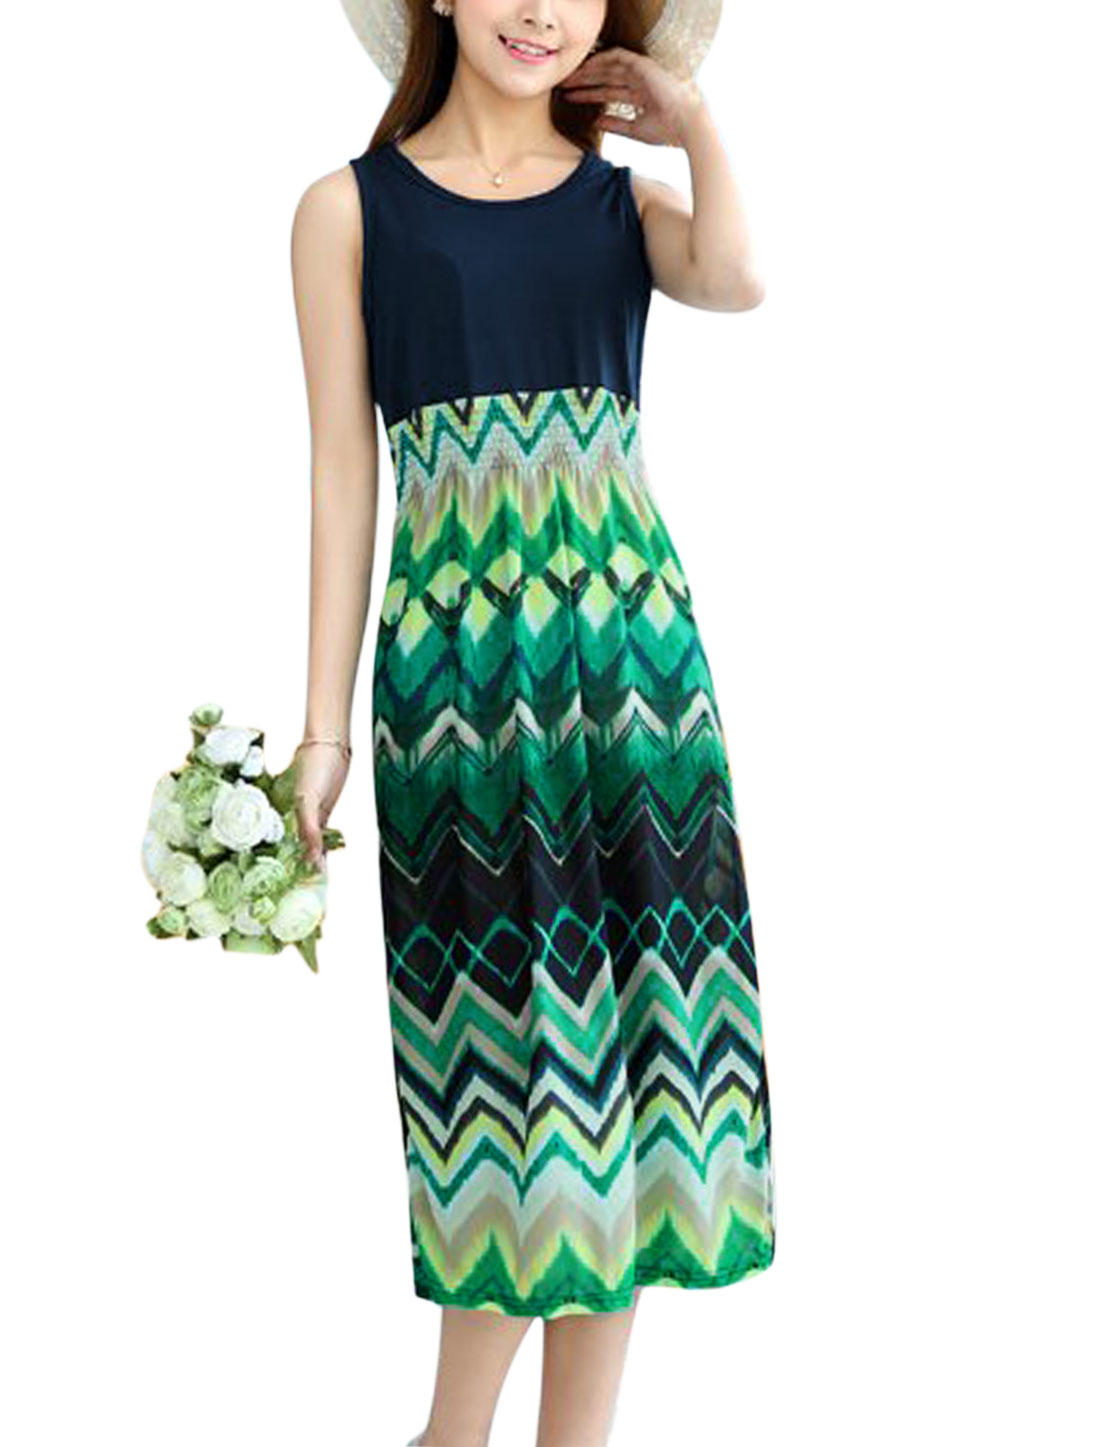 Ladies Round Neck Zigzag Print Summer Dresses Sea Green Navy Blue XS